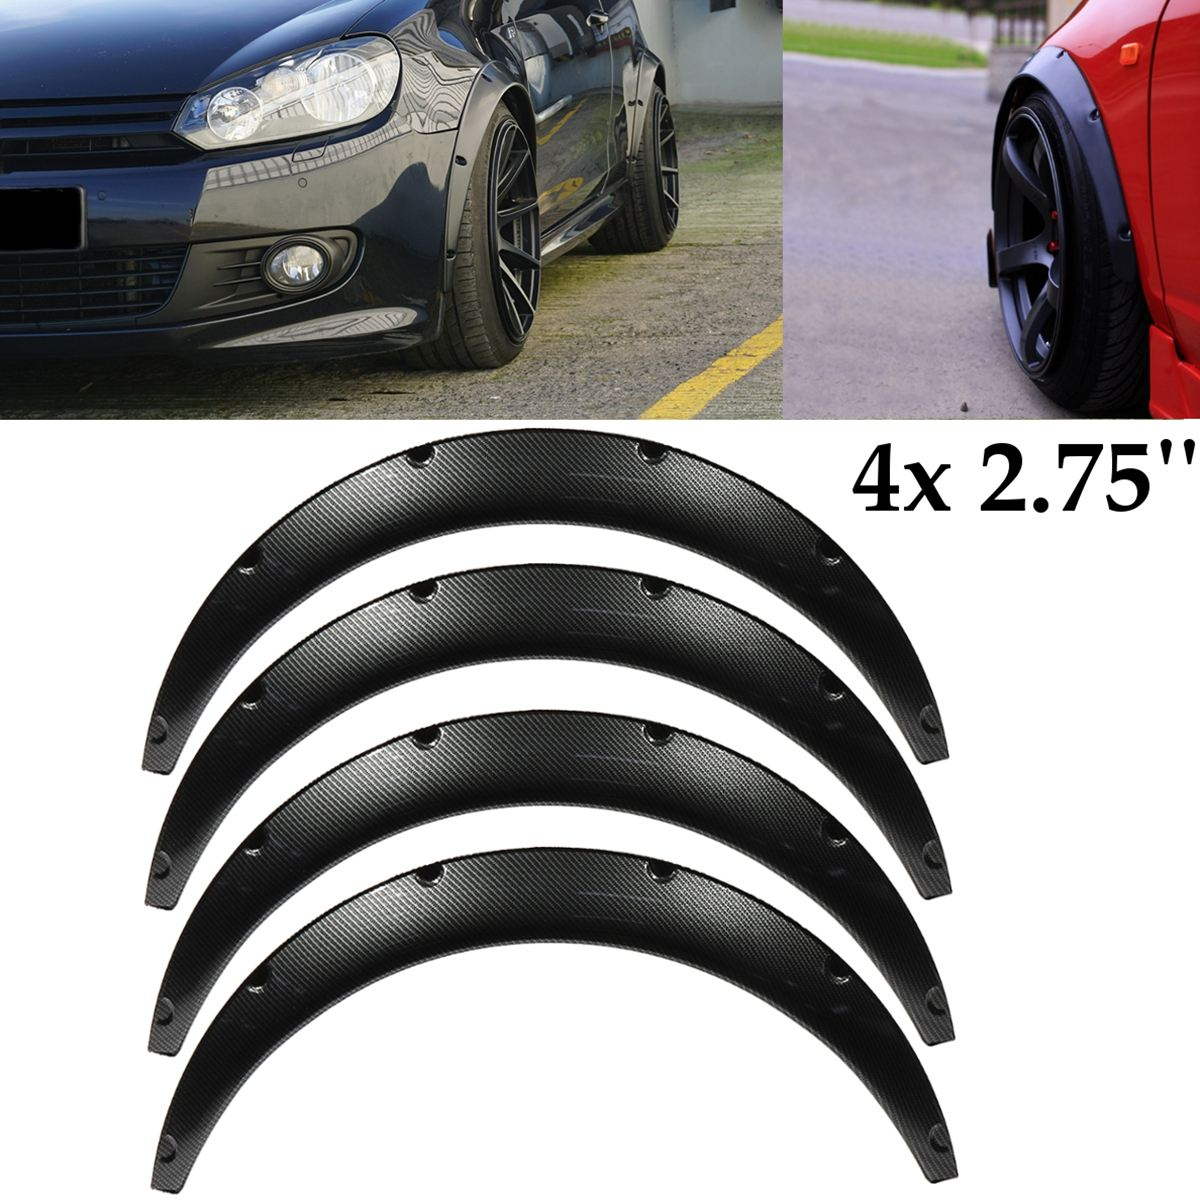 4Pcs 2.75 inch Universal Carbon Fiber Flexible Car Body For Fender Flares Extension Wide Wheel Arches